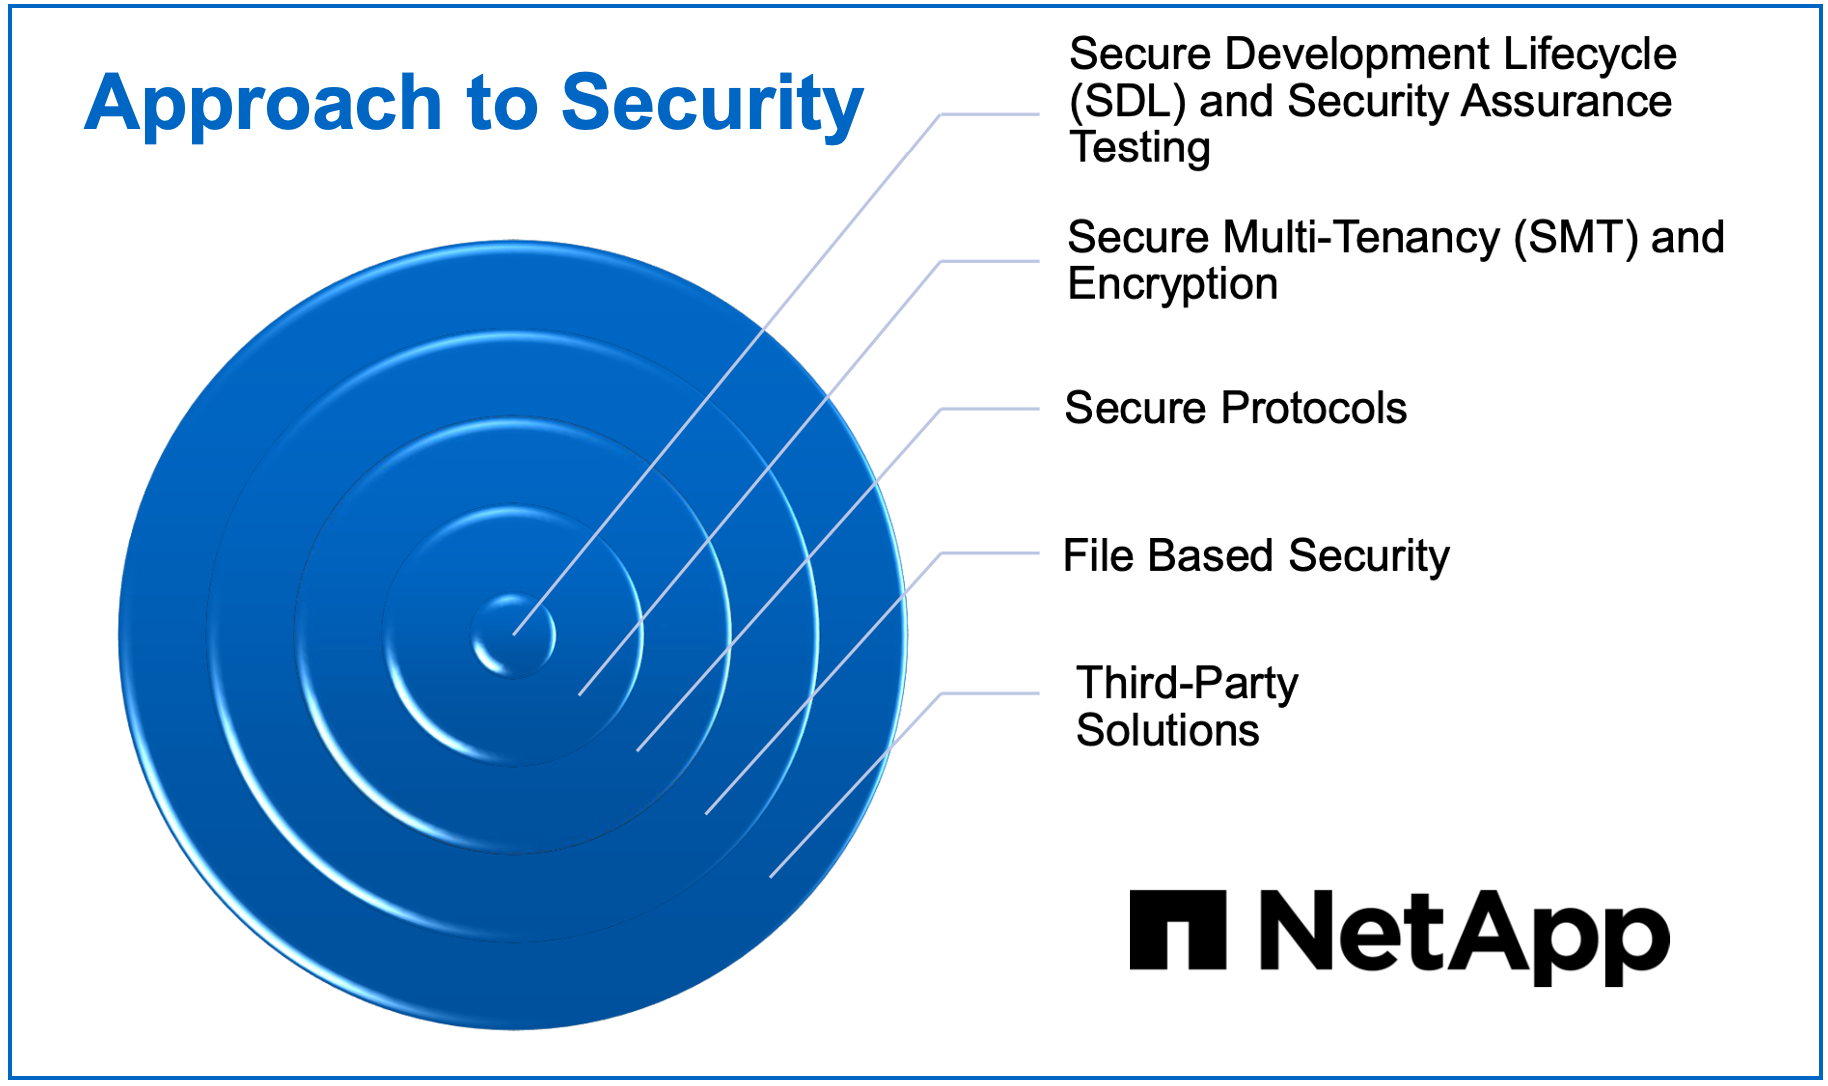 NetApp approach to security